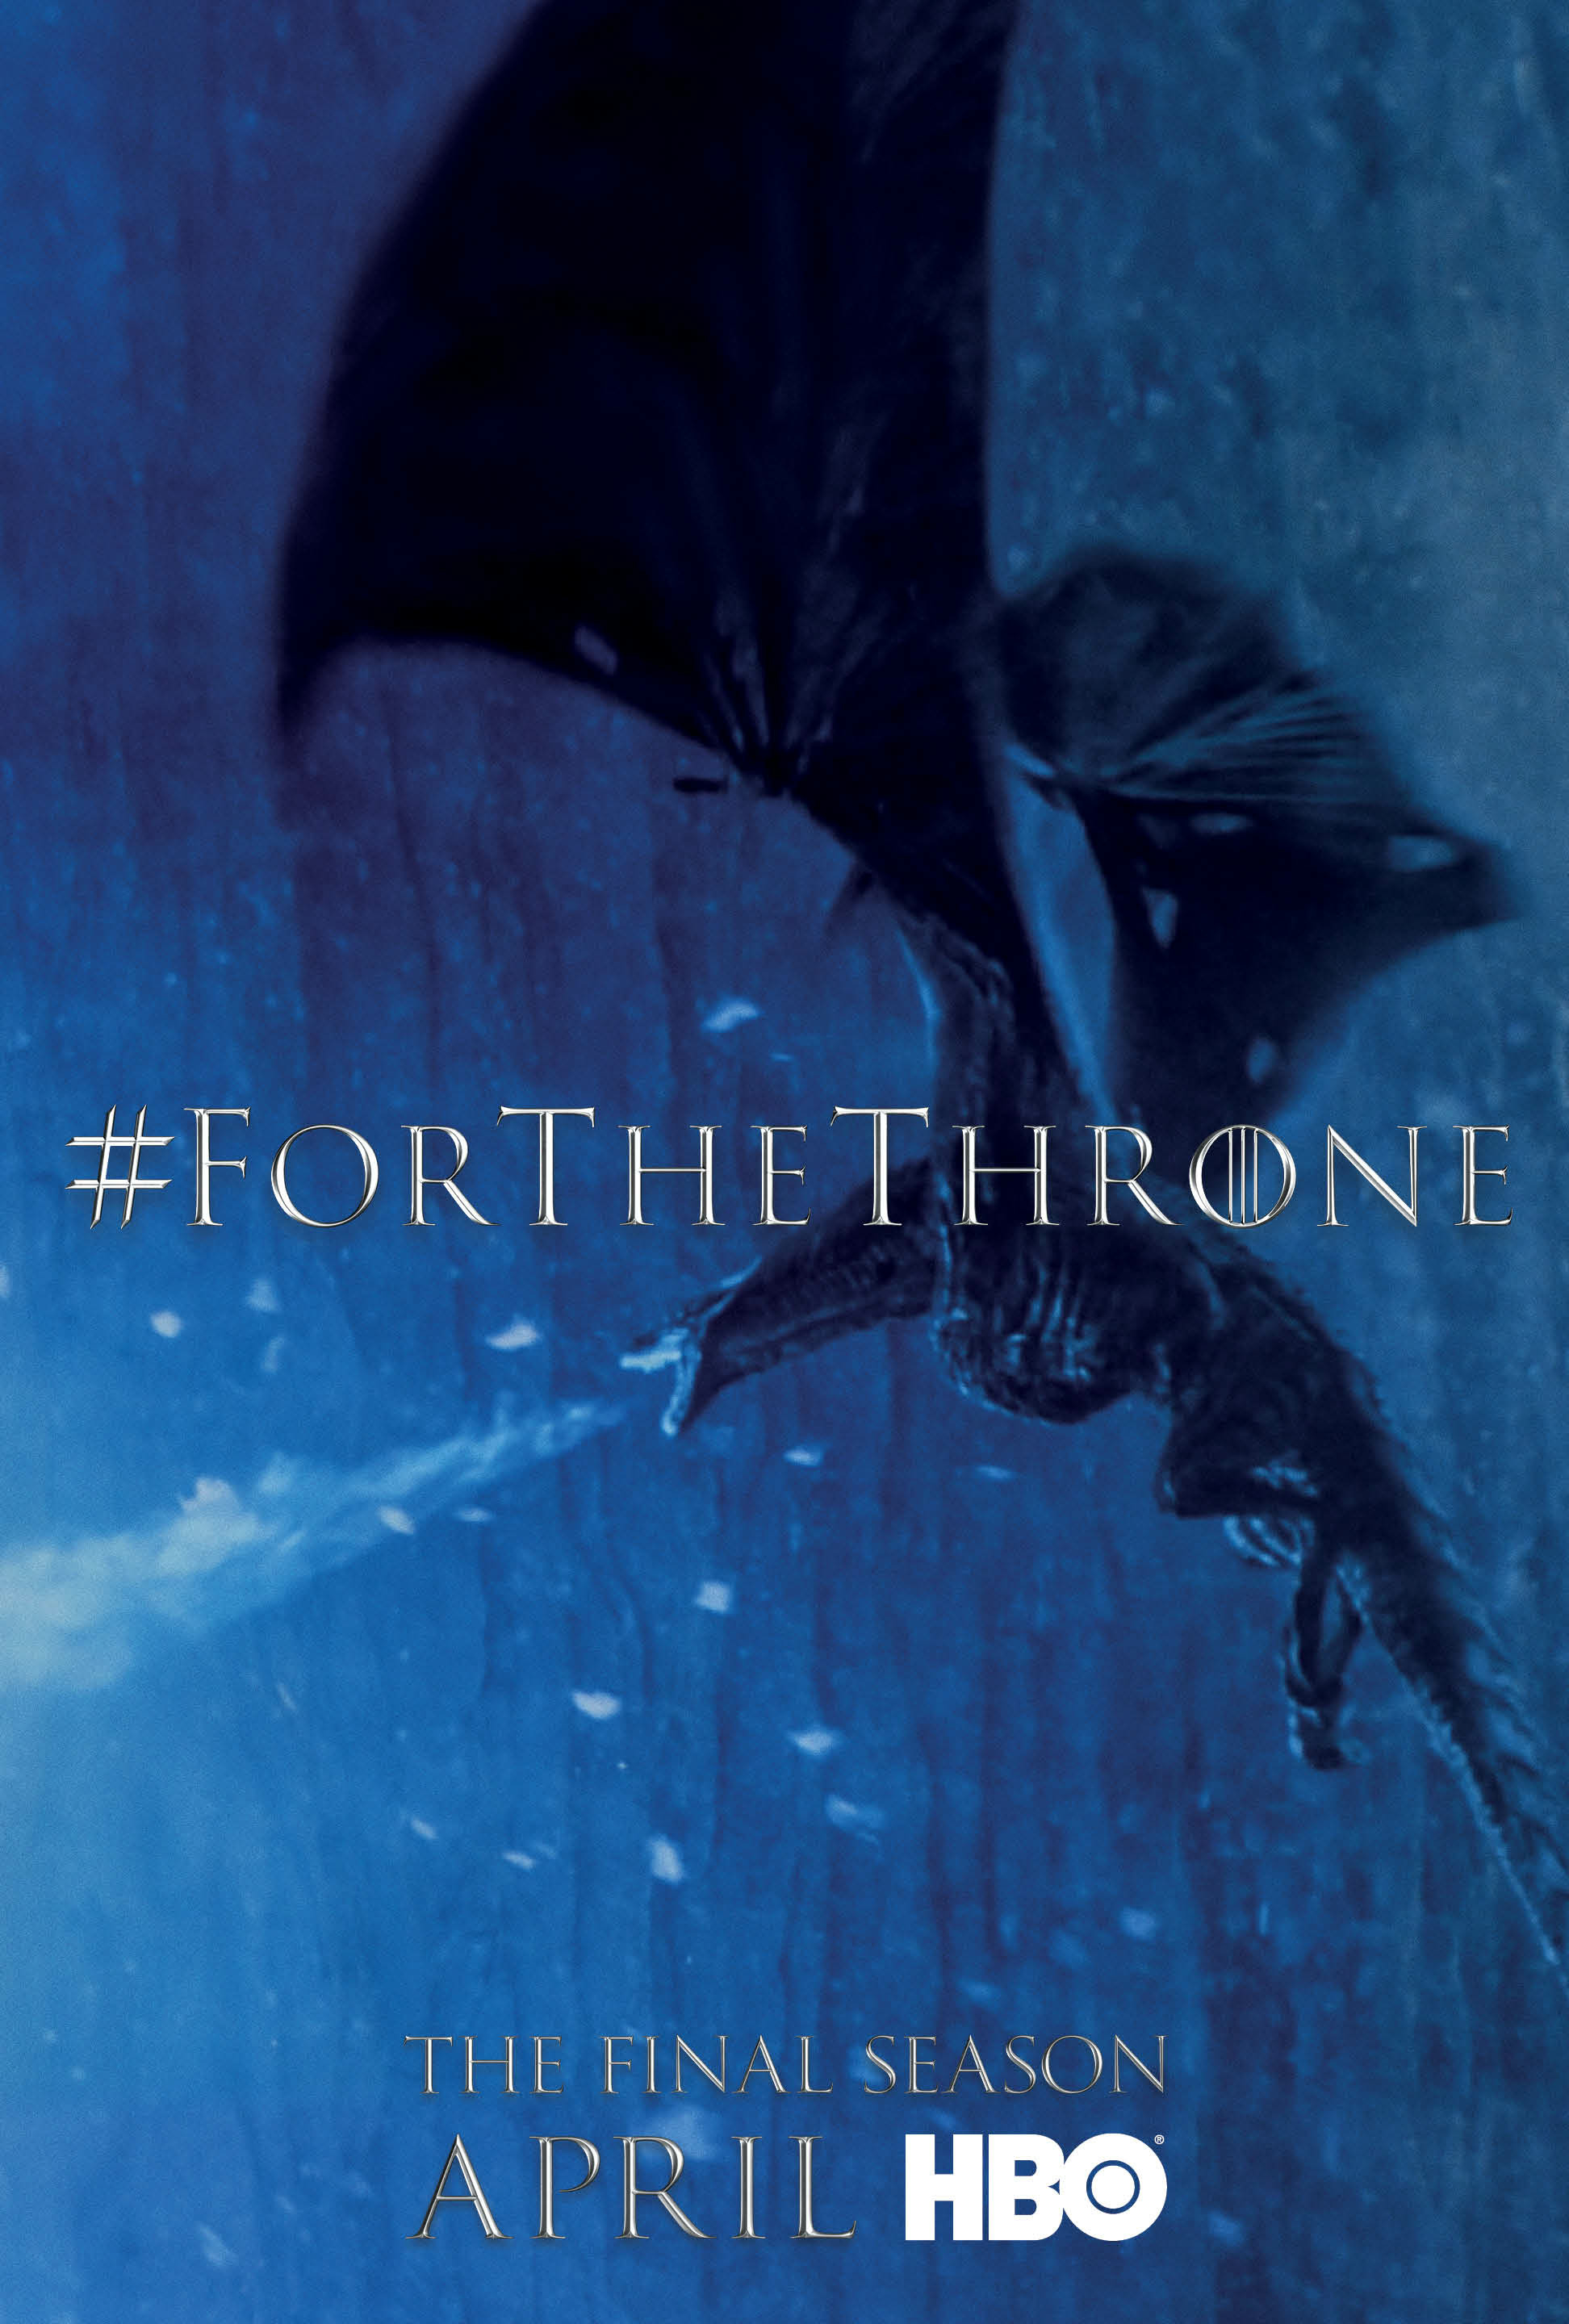 Game of Thrones - 'For the Throne' Poster - Viserion